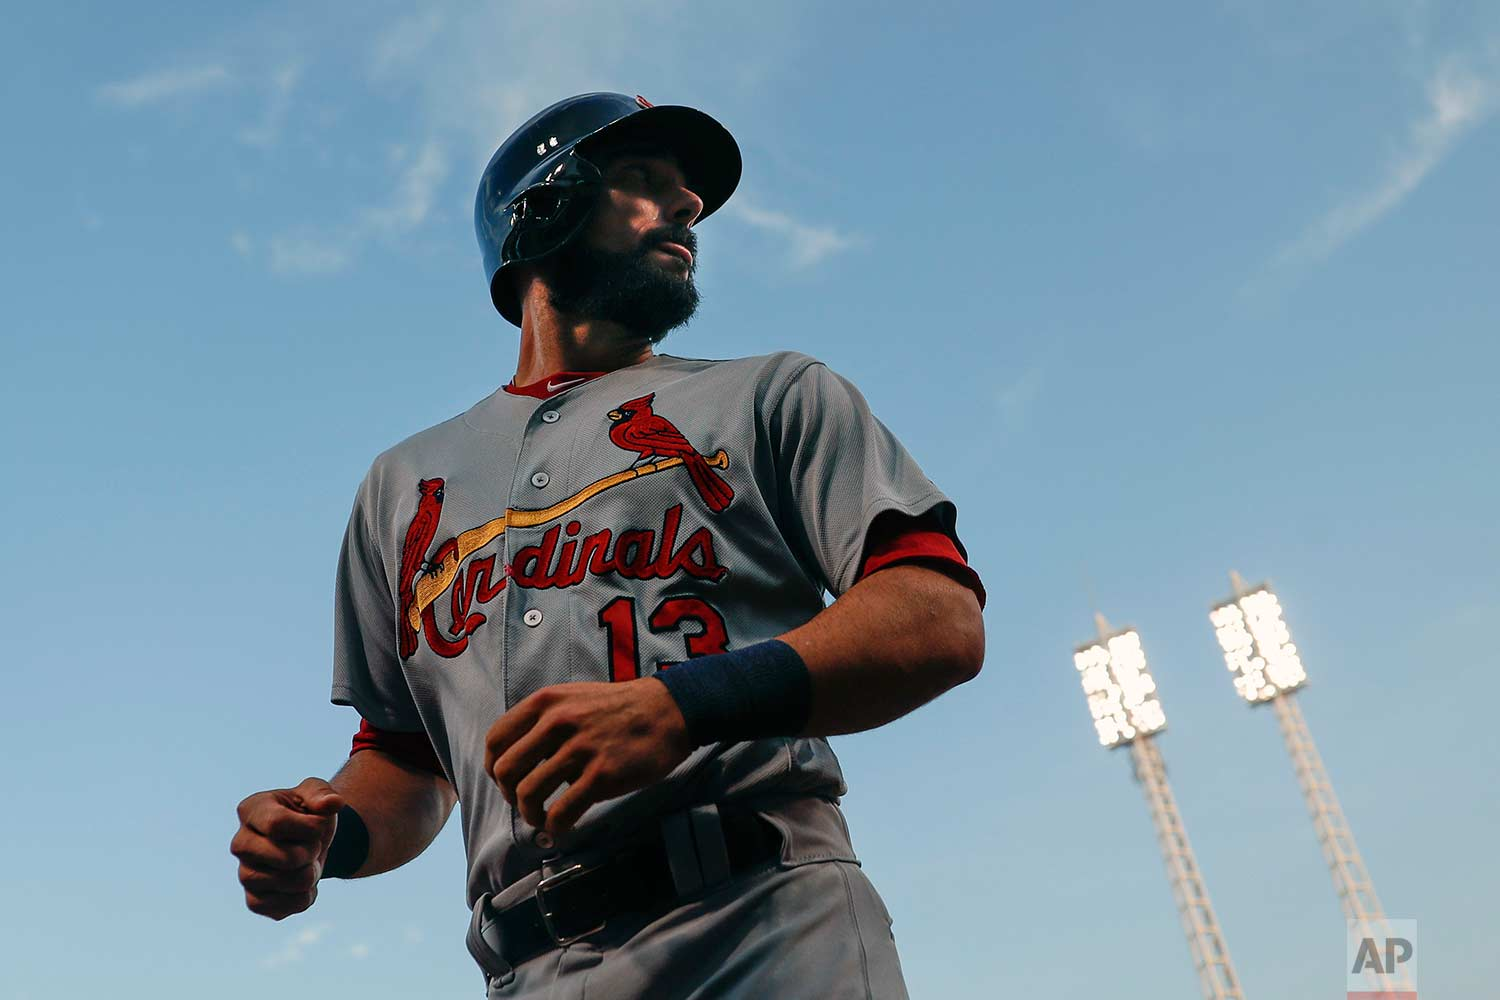 St. Louis Cardinals' Matt Carpenter runs towards the dugout after hitting a solo home run off Cincinnati Reds starting pitcher Rookie Davis in the first inning of a baseball game, Wednesday, Sept. 20, 2017, in Cincinnati. (AP Photo/John Minchillo)